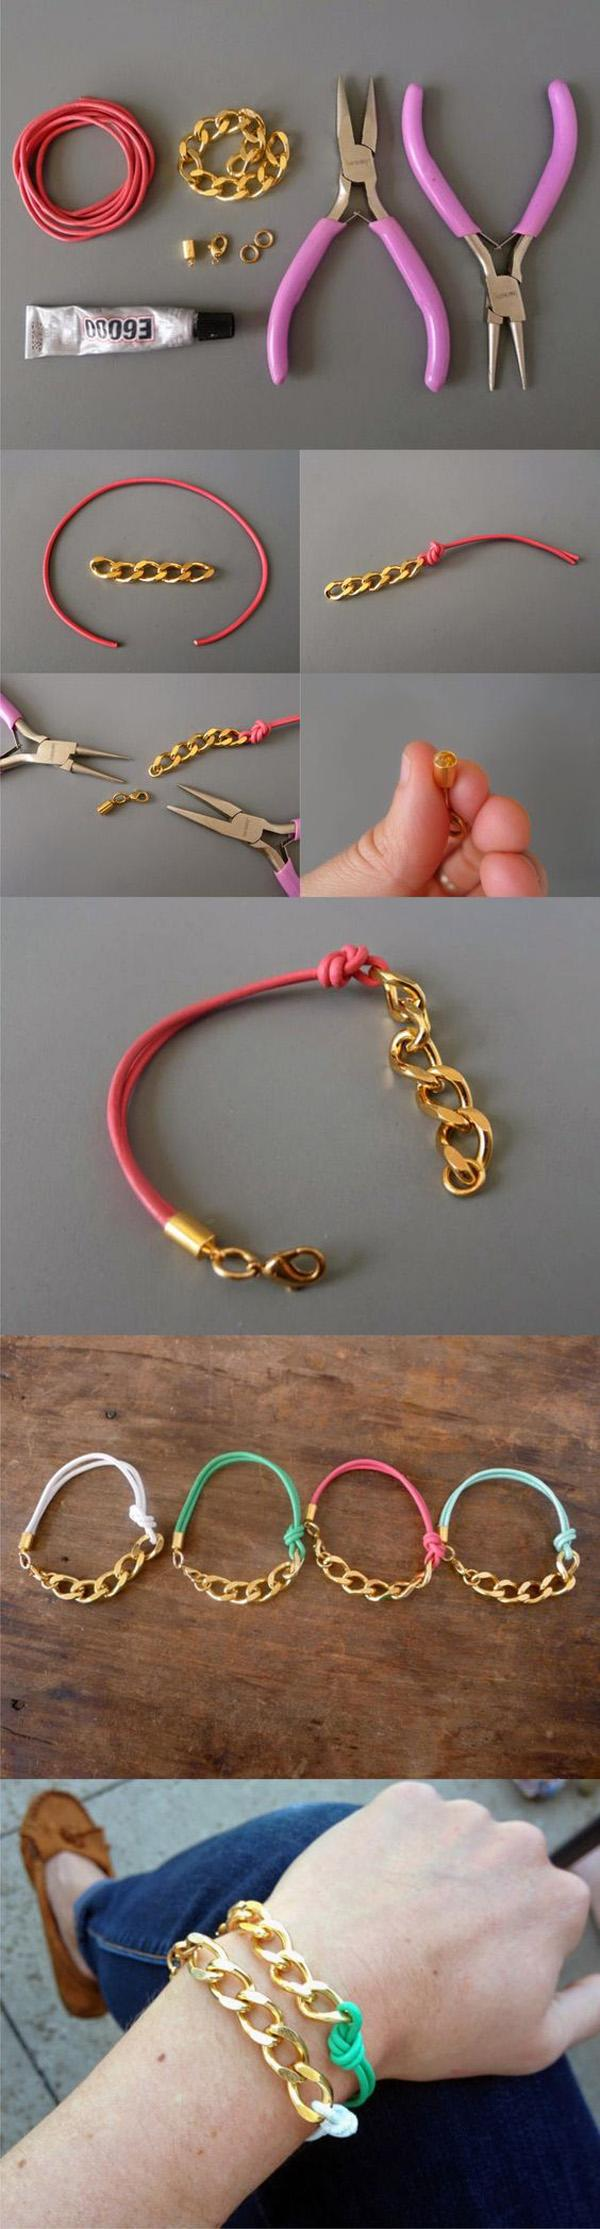 Bracelet with chain and leather cord-13